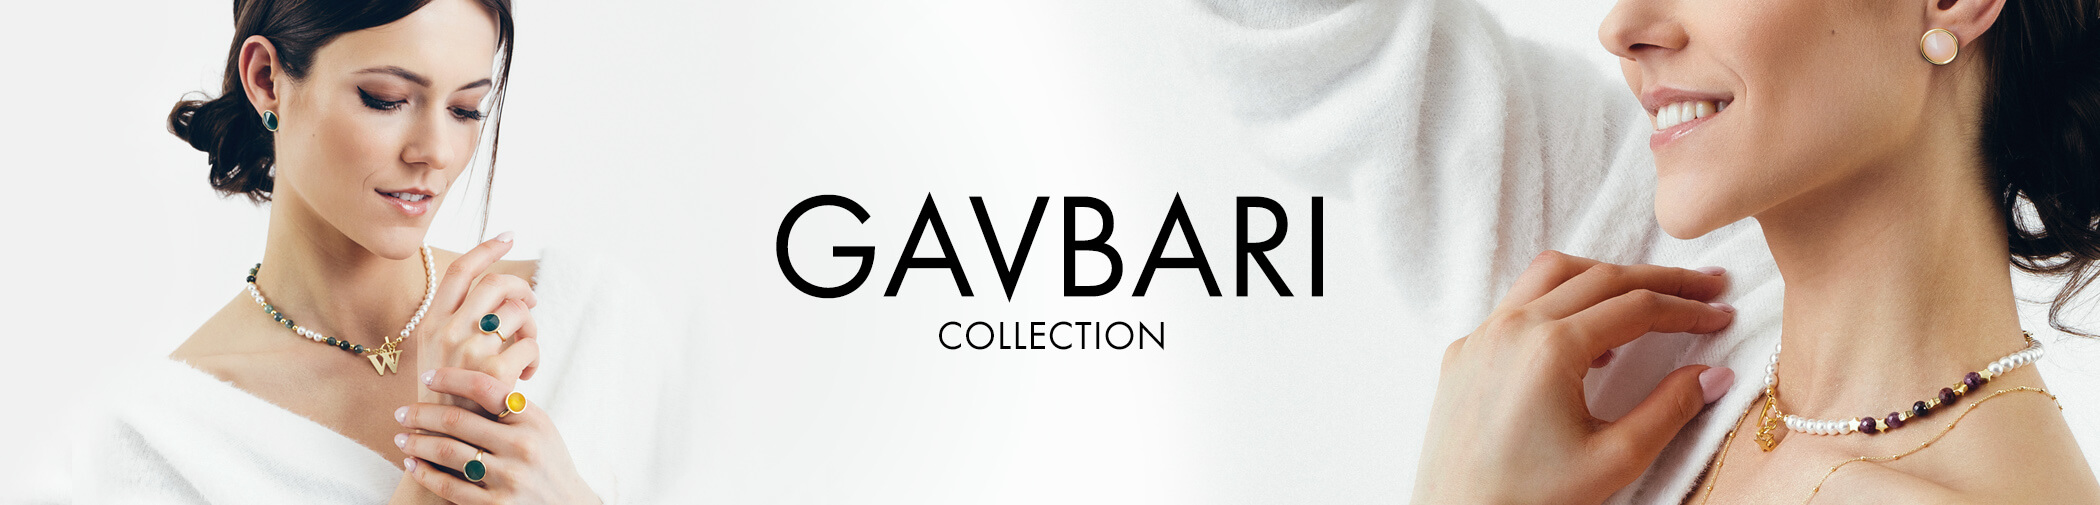 Gavbari Collection